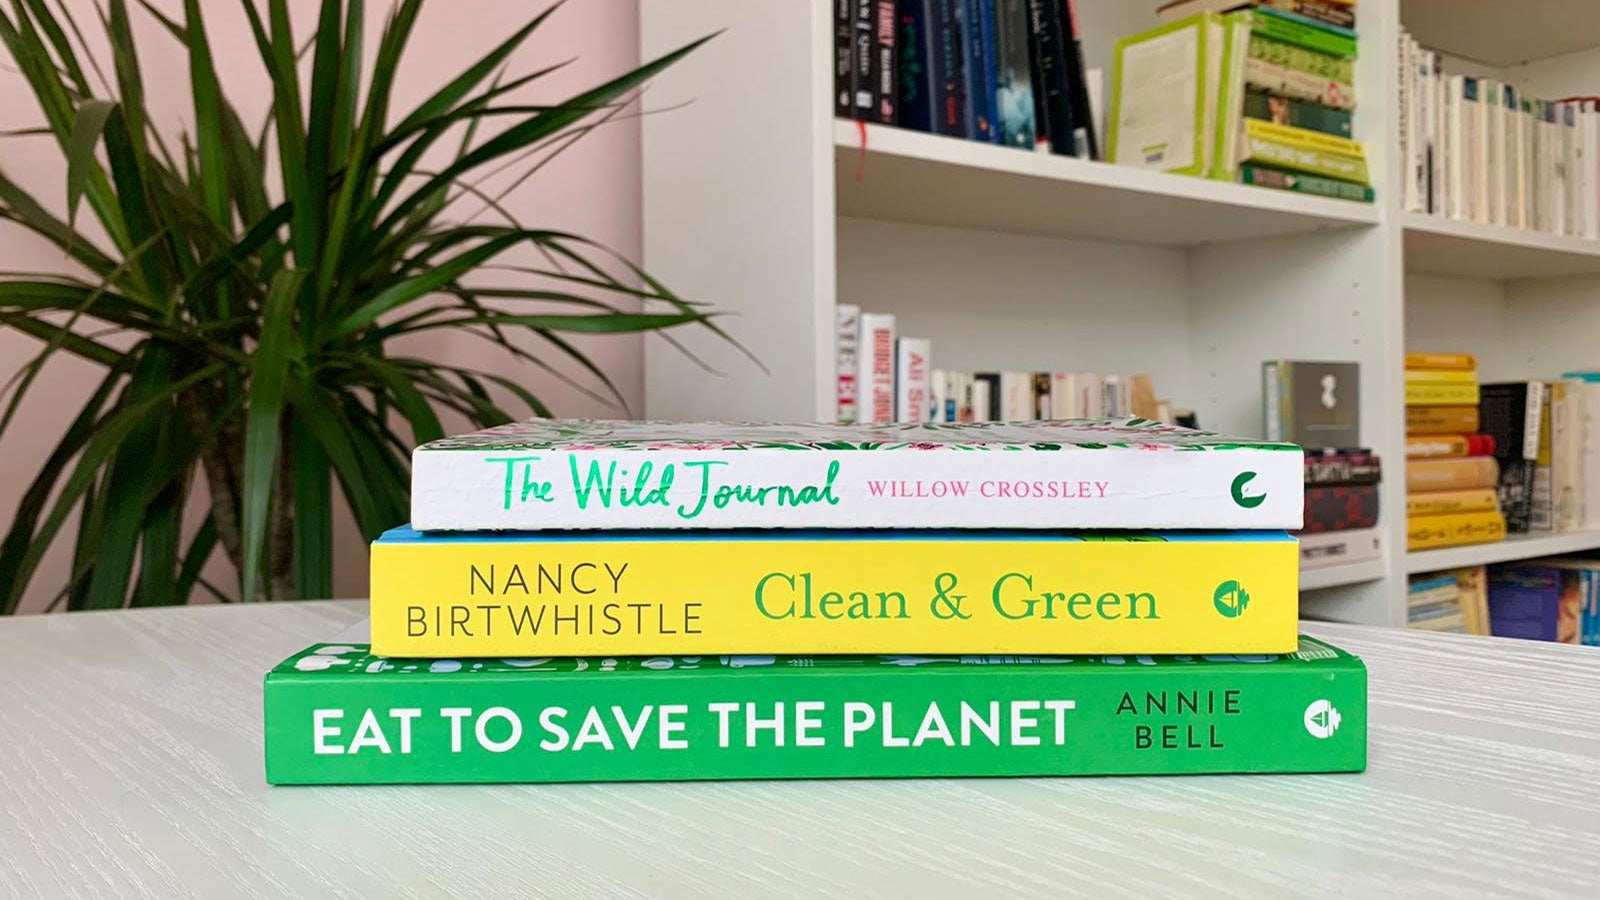 Eat to Save the Planet, Clean & Green, The Wild Journal stacked on a white table in front of a bookcase and a plant.